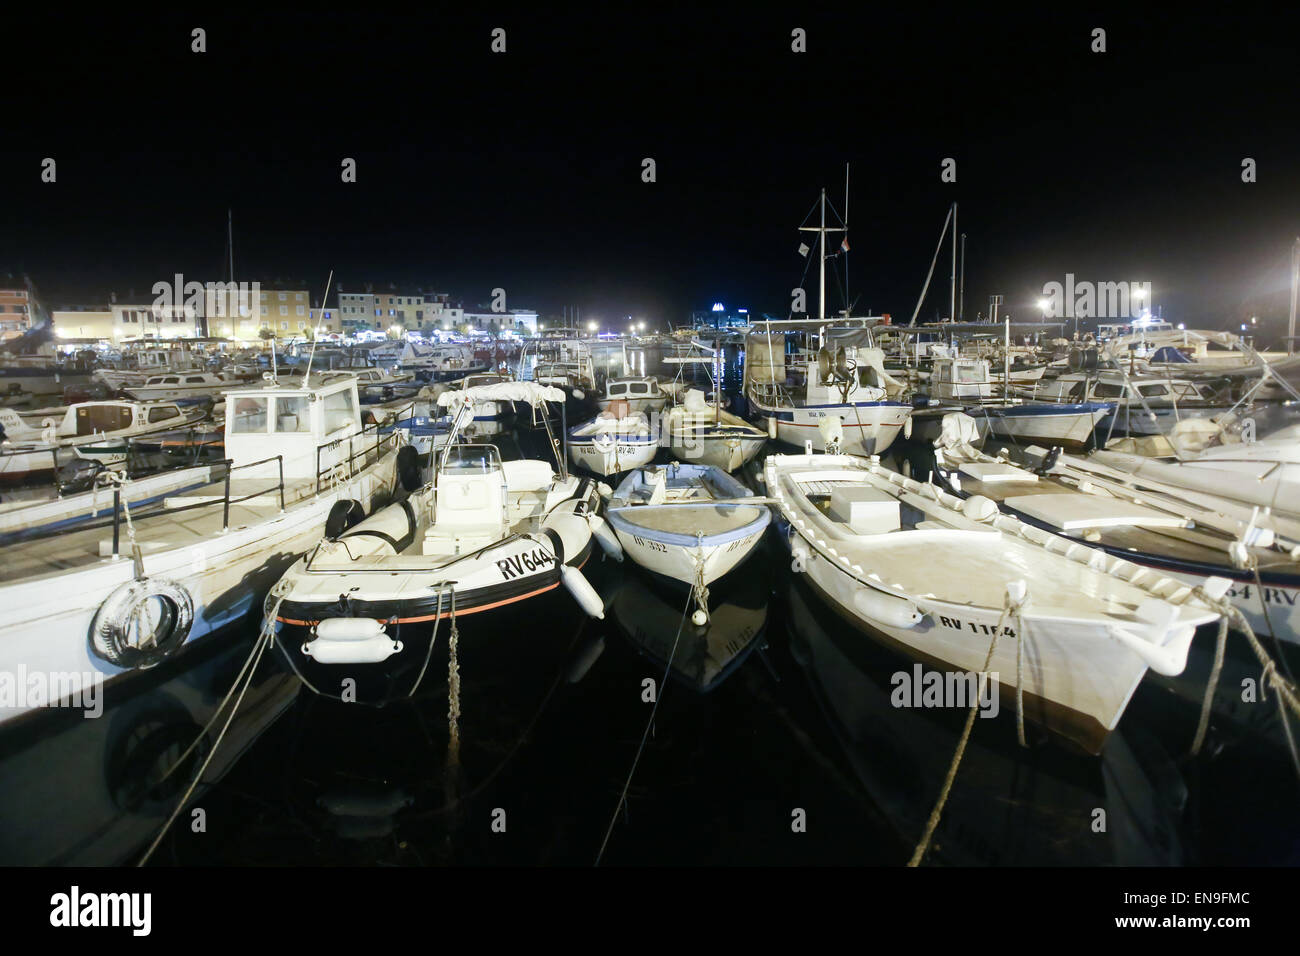 A large group of boats anchored in the marina with a view of the city seafront at night in Rovinj, Croatia - Stock Image